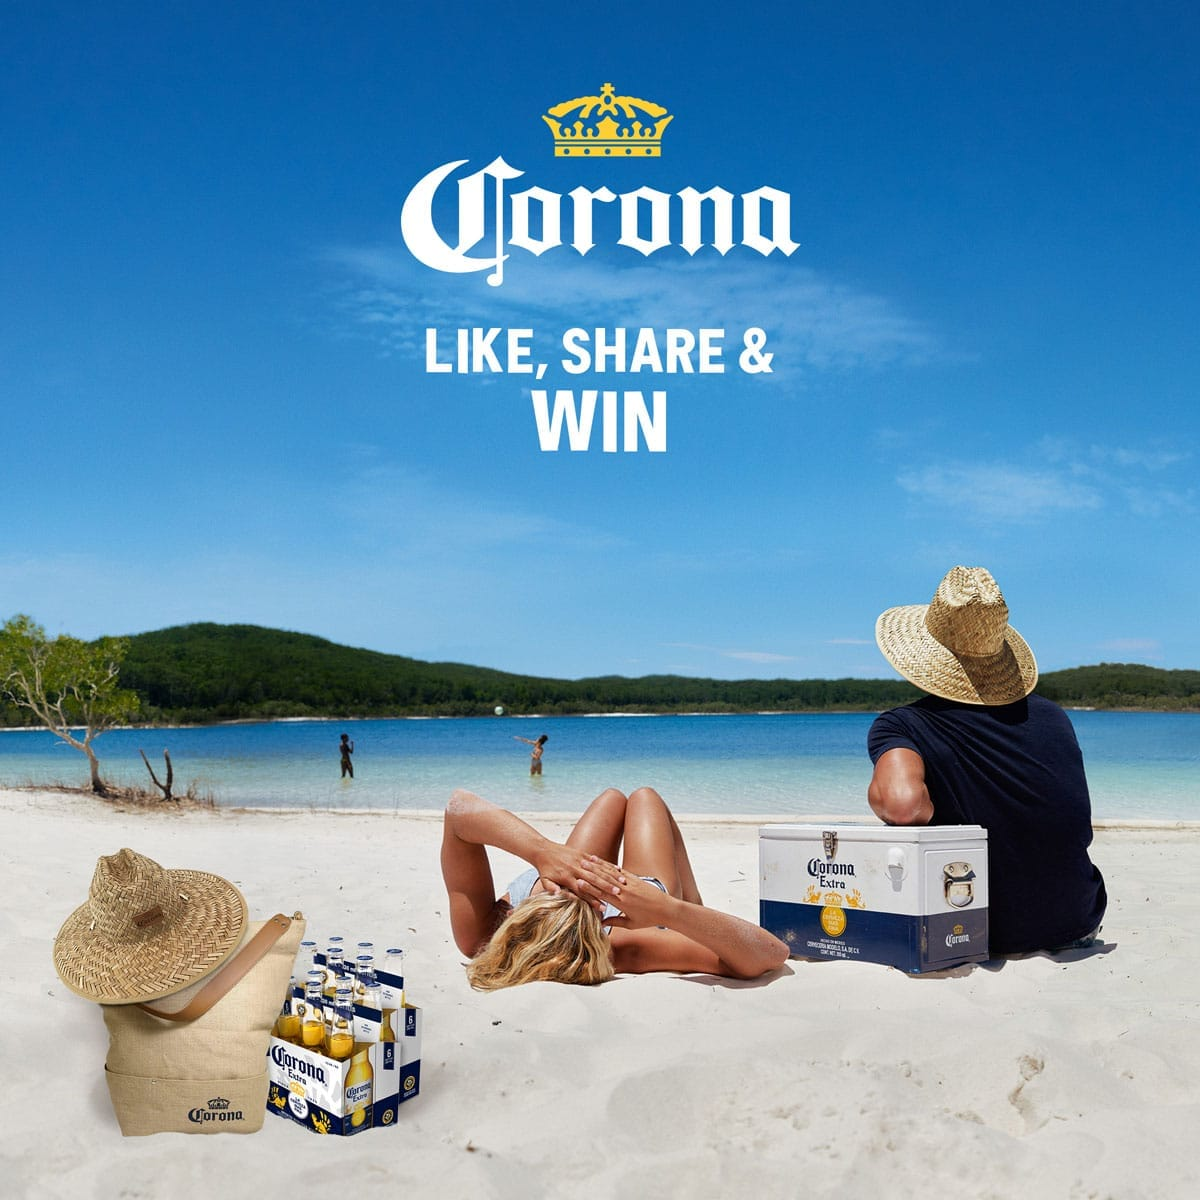 corona beer pictures on the beach